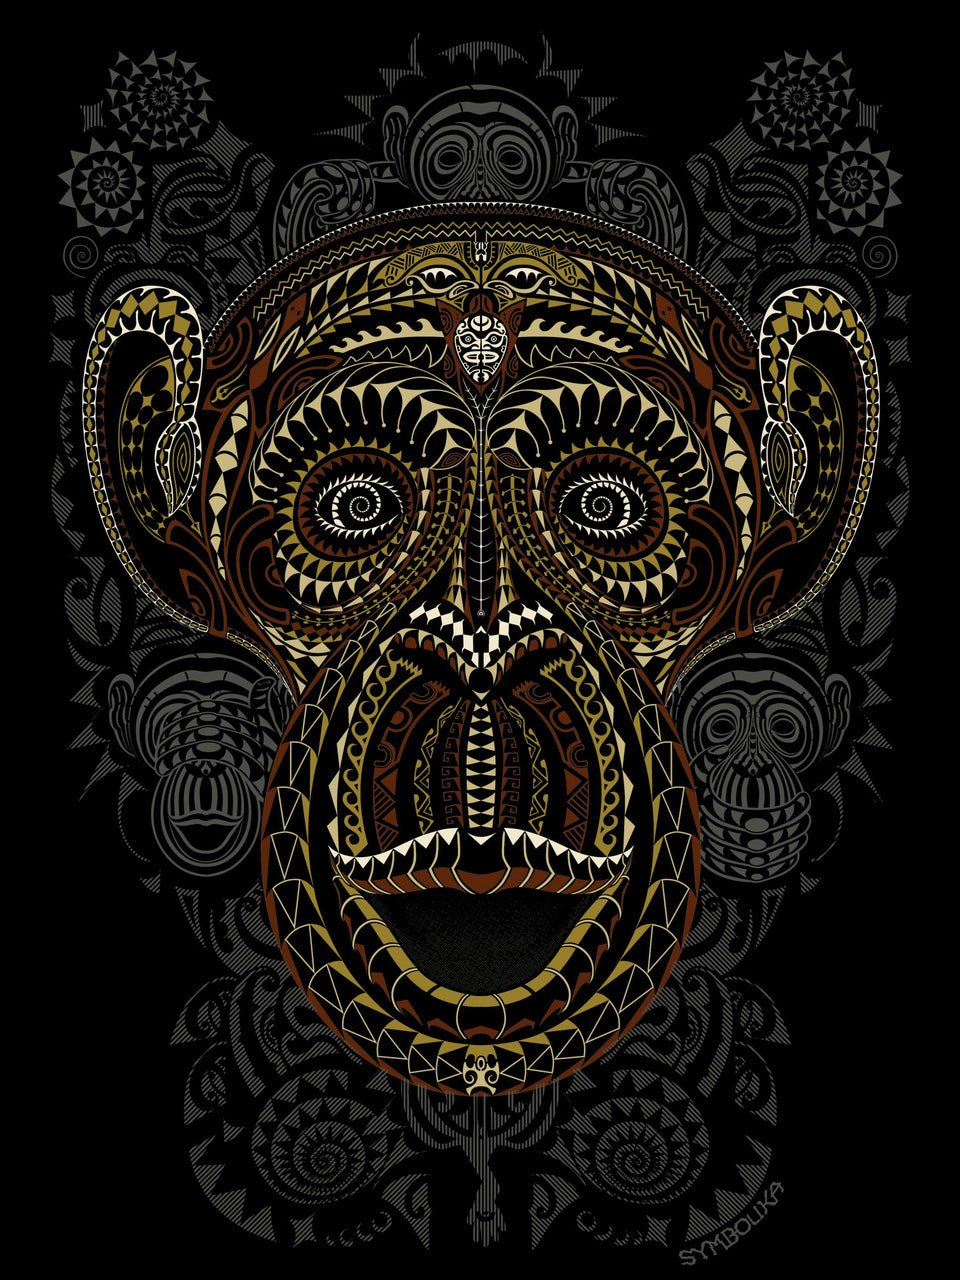 Ta Wise Monkeys  Made To Order Men T-Shirt - Black